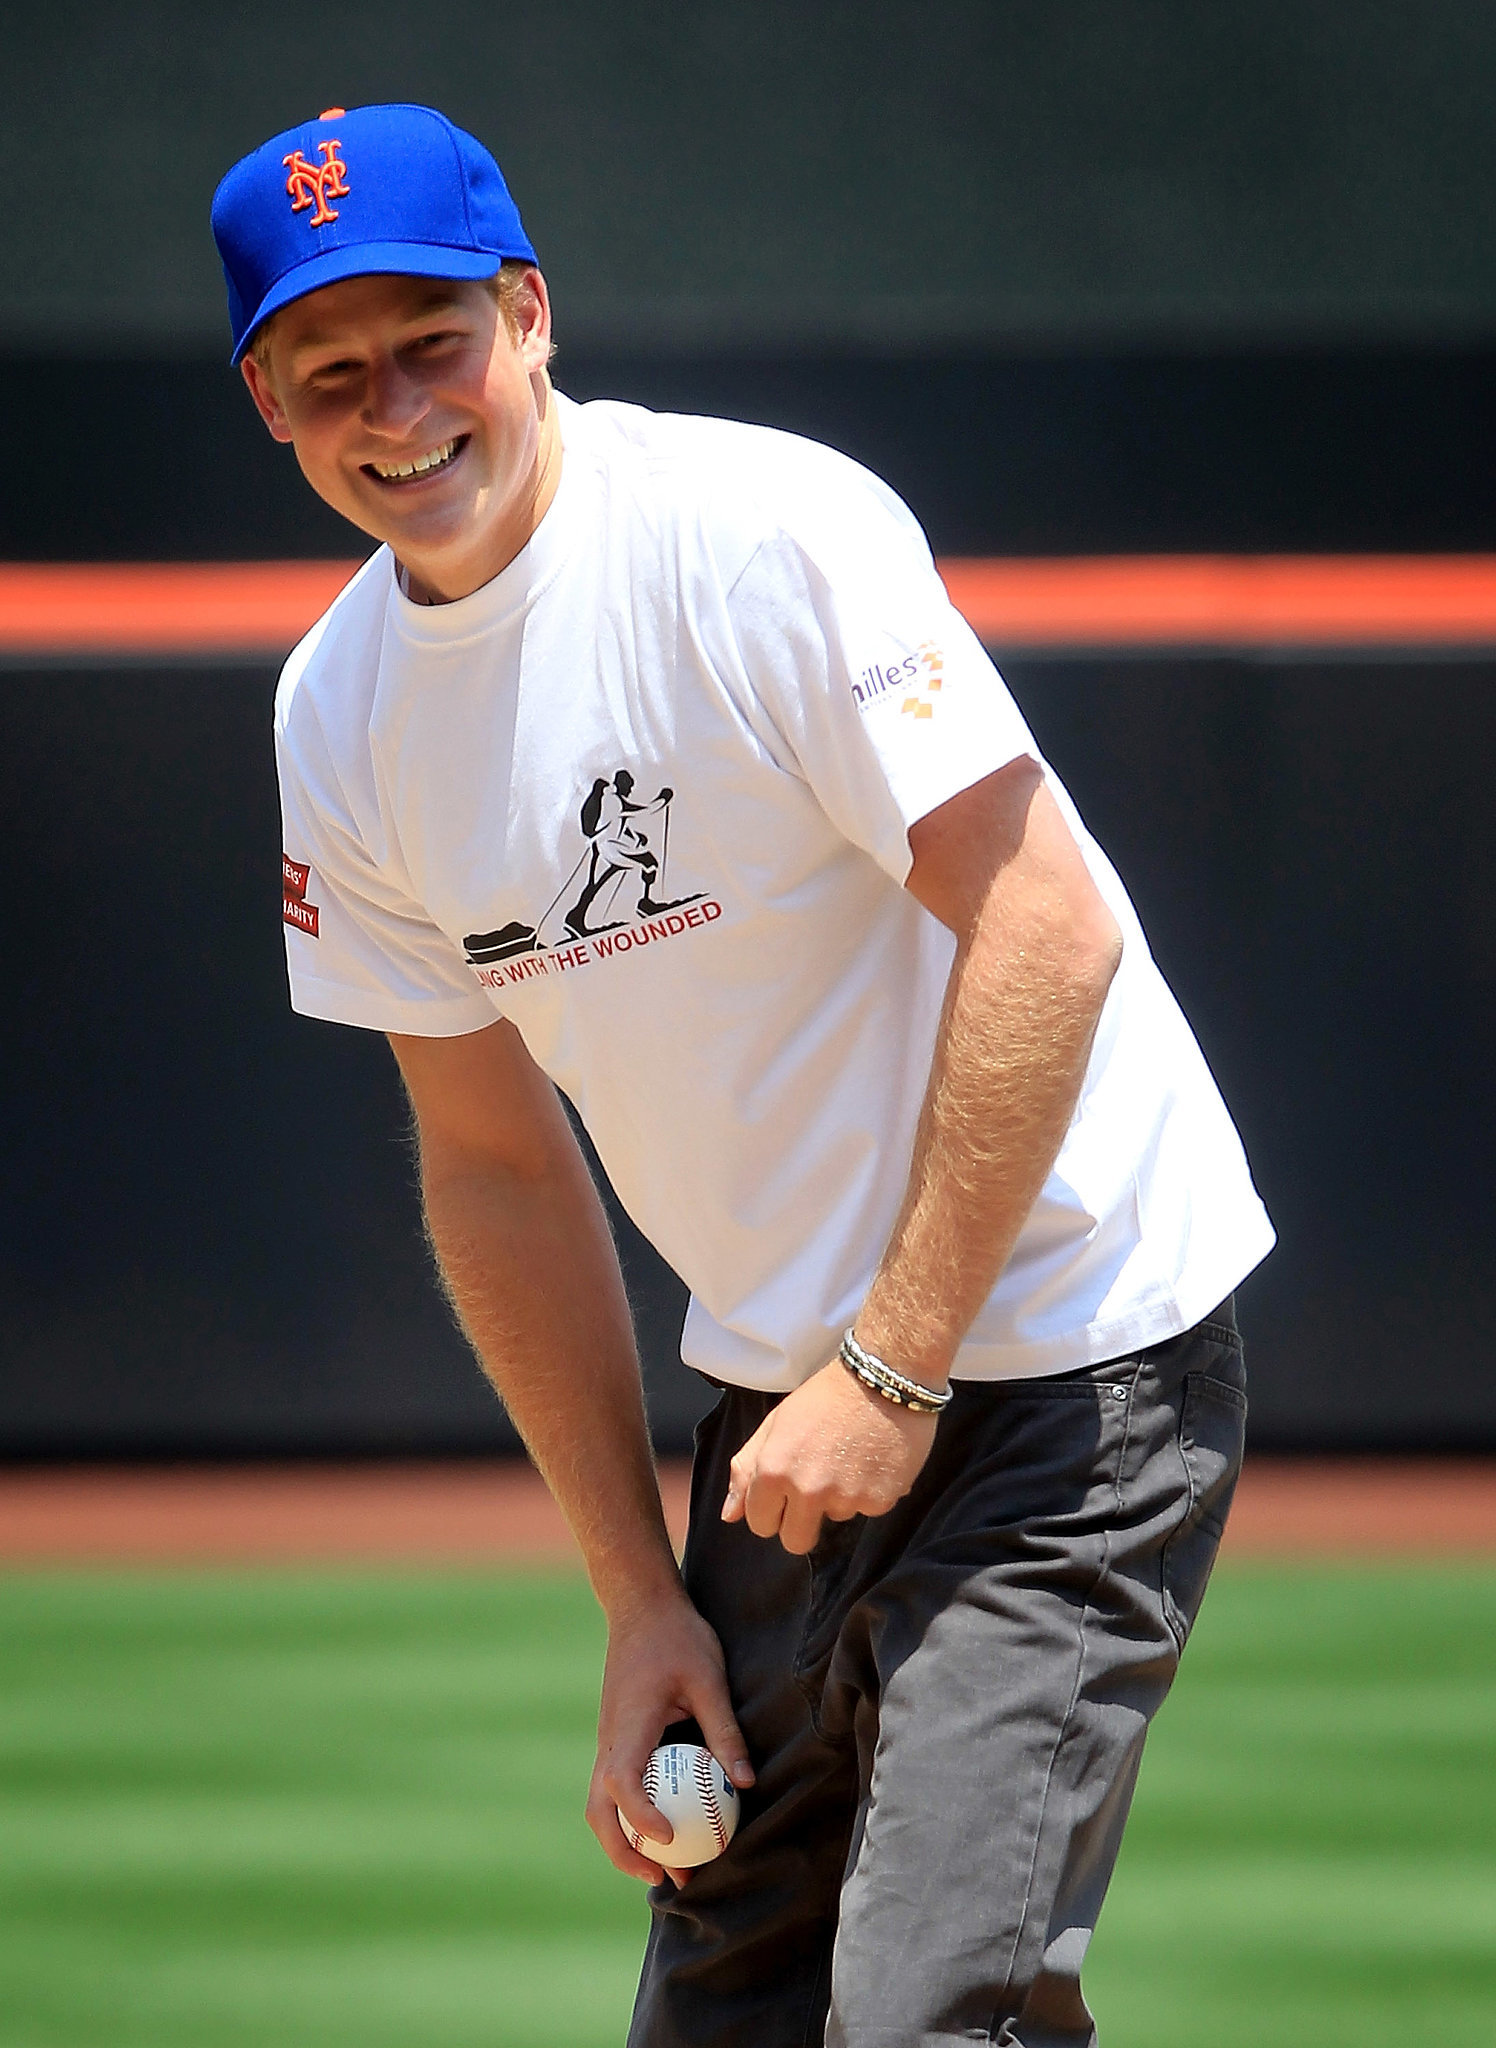 The prince threw the opening pitch before the New York Mets played the Minnesota Twins in New York in June 2010.